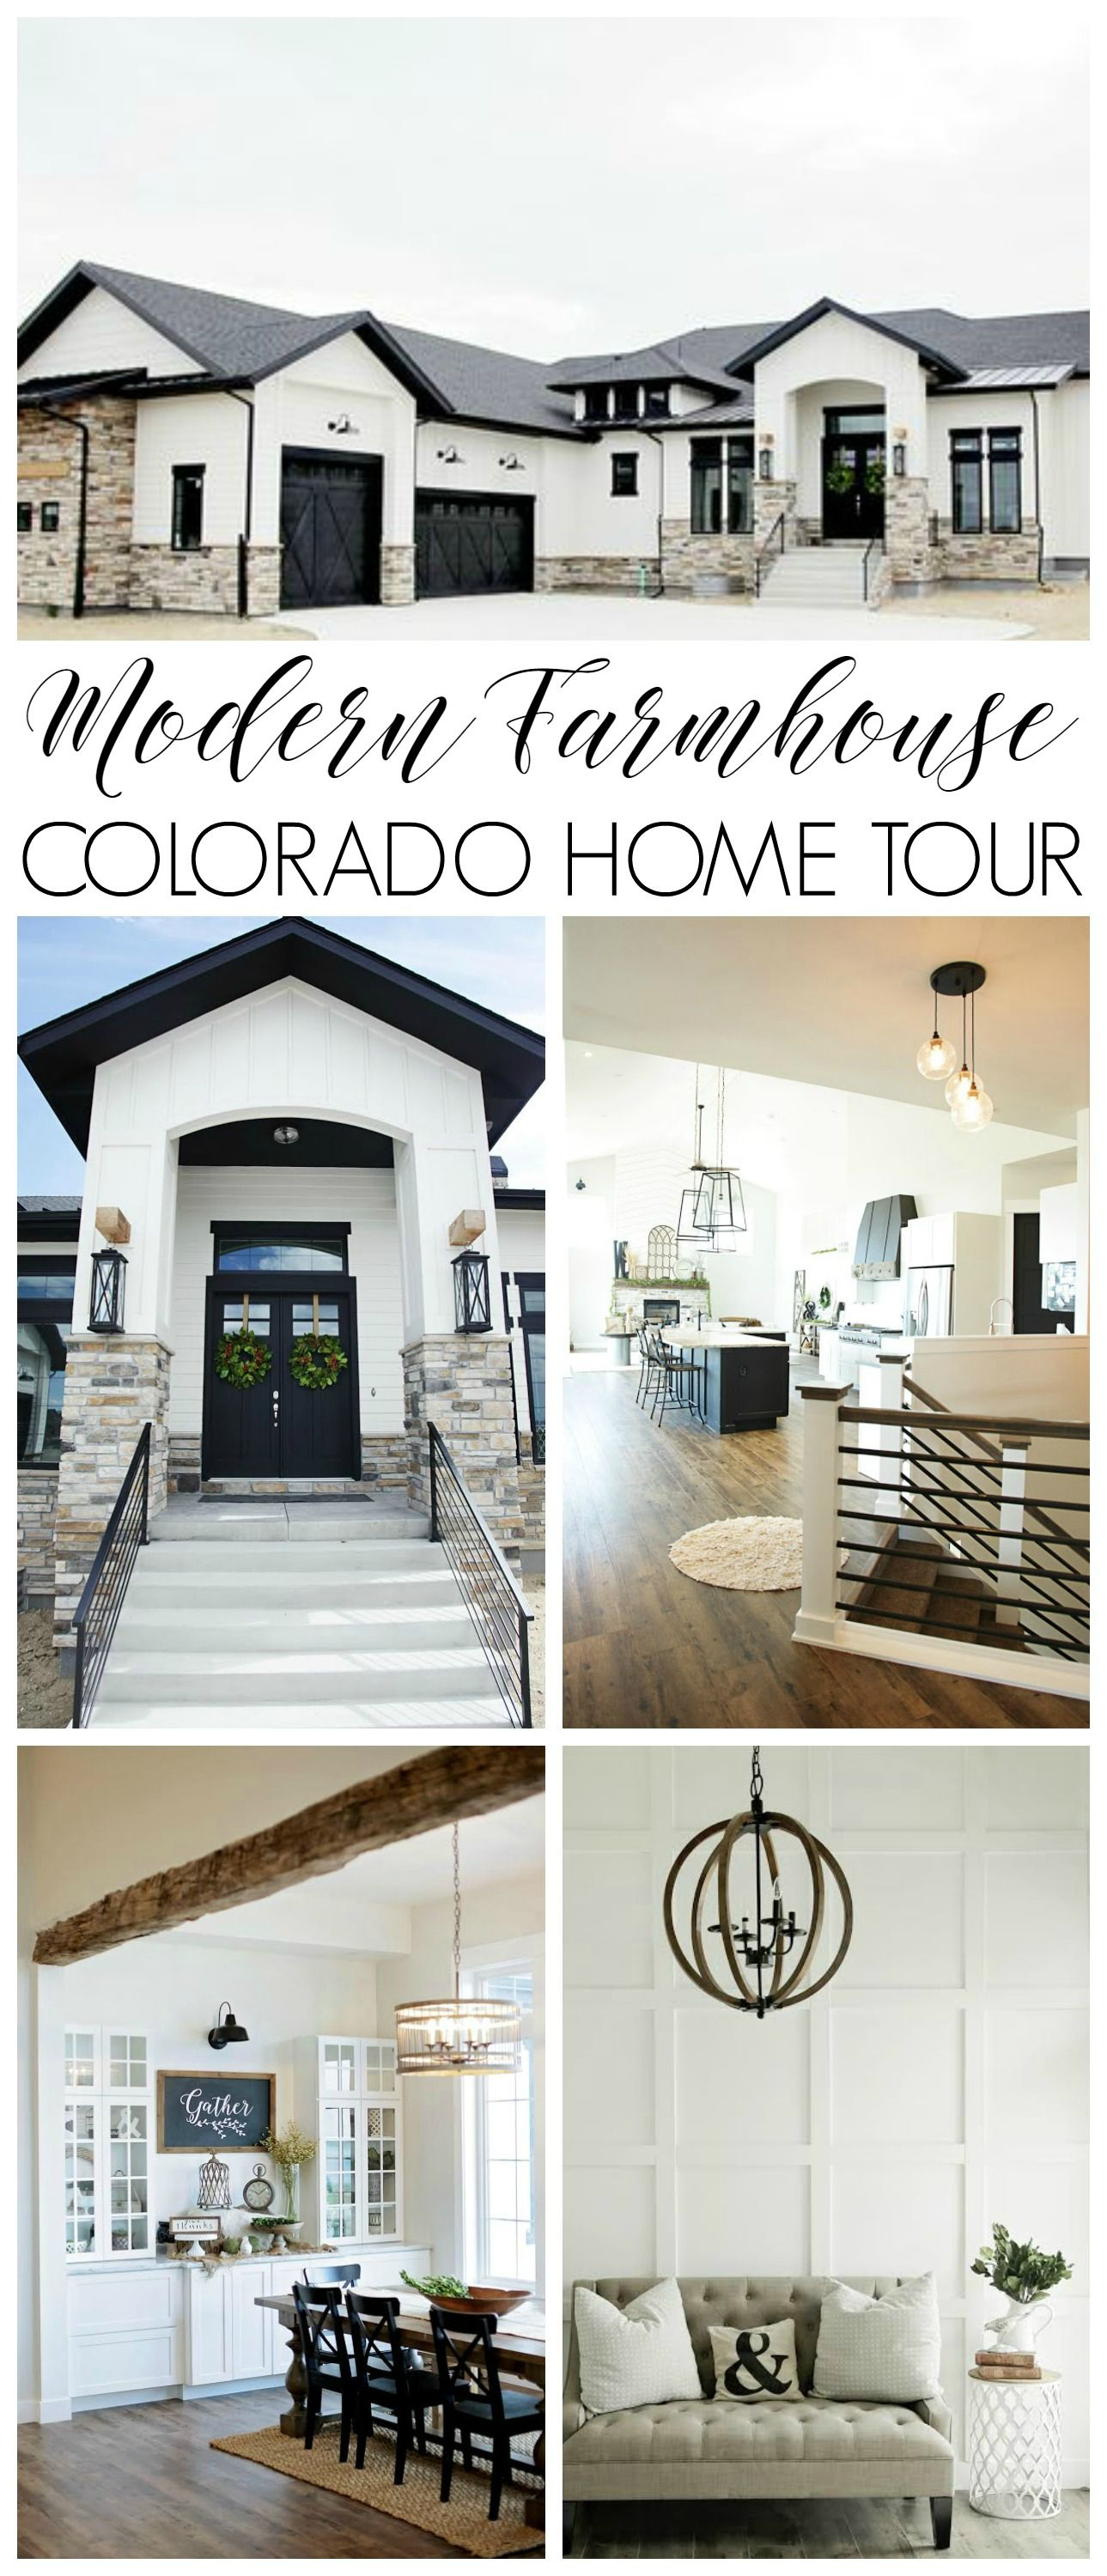 Custom built modern farmhouse home tour with household no 6 youll find rustic barn wood beams vaulted ceilings wood floors and farmhouse style goodness